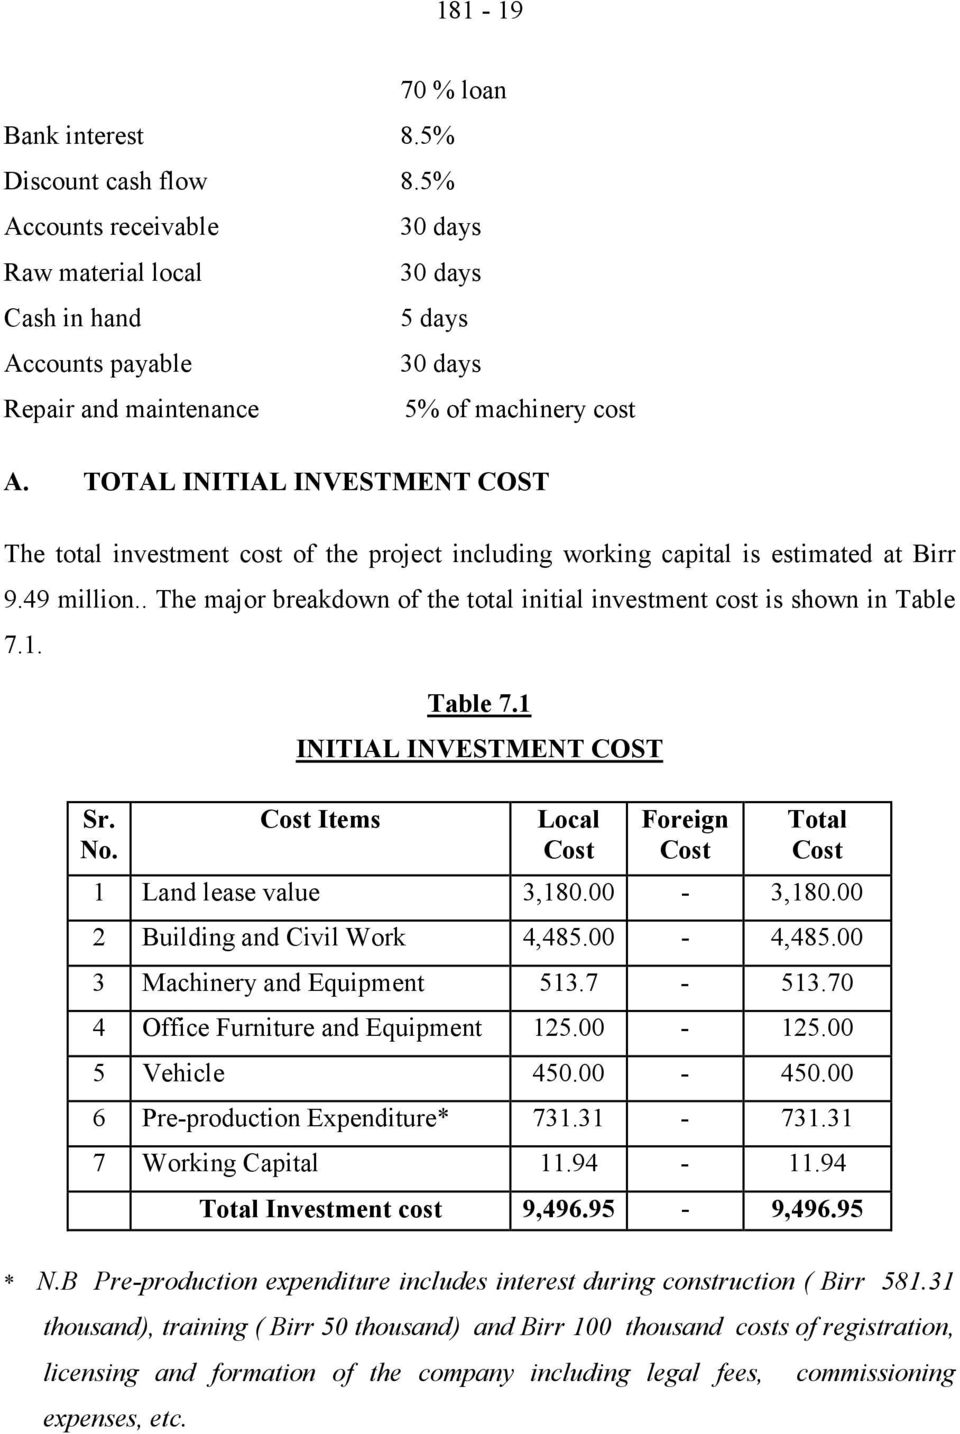 TOTAL INITIAL INVESTMENT COST The total investment cost of the project including working capital is estimated at Birr 9.49 million.